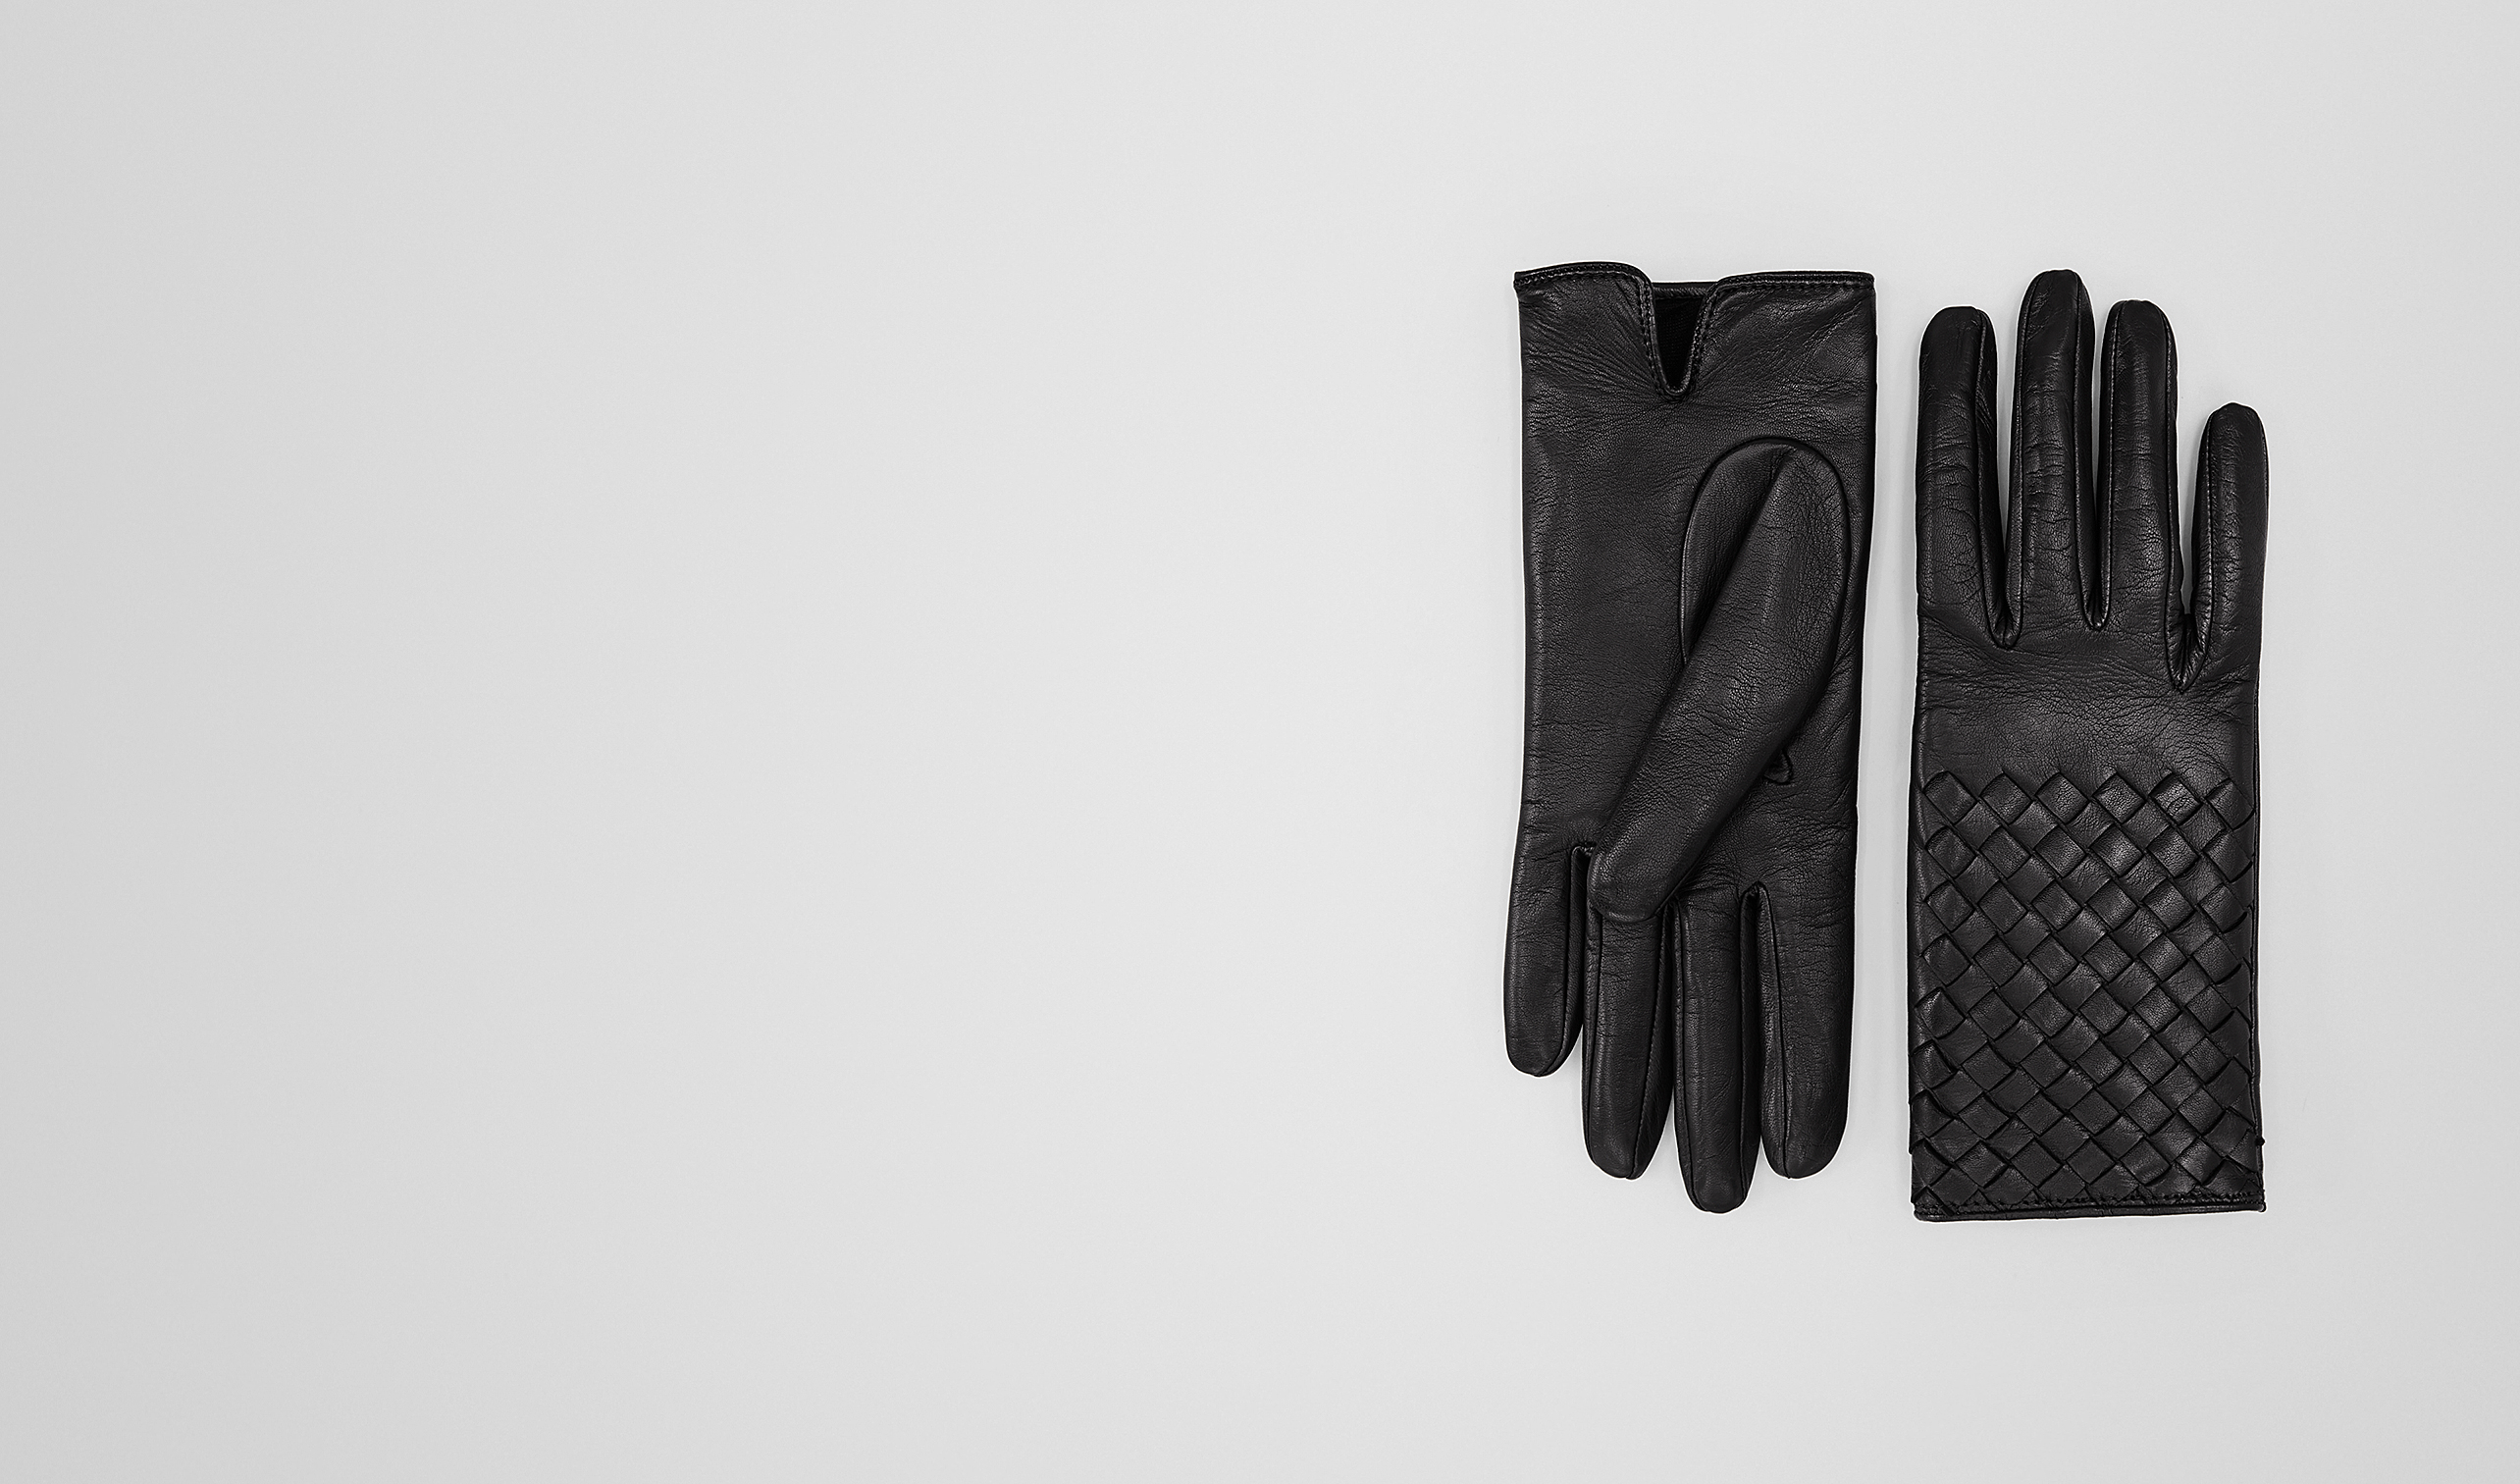 BOTTEGA VENETA Scarf or other D GLOVE IN NERO NAPPA, INTRECCIATO DETAILS pl